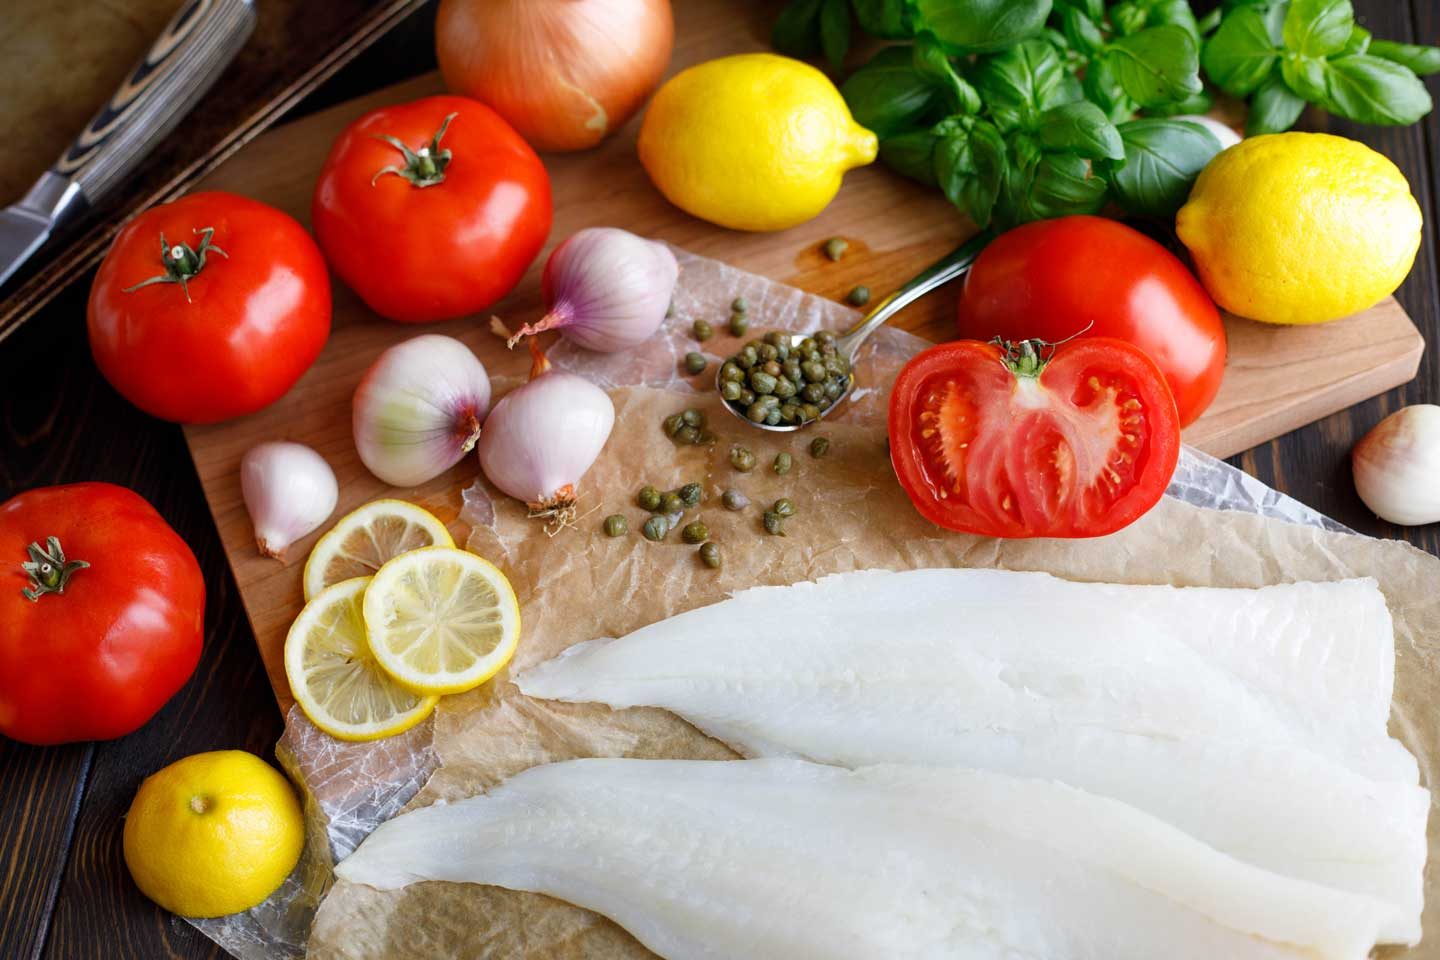 Ingredients needed to make this broiled fish recipe - cod fillets, fresh tomatoes, lemons, shallot, onion, capers, and basil.